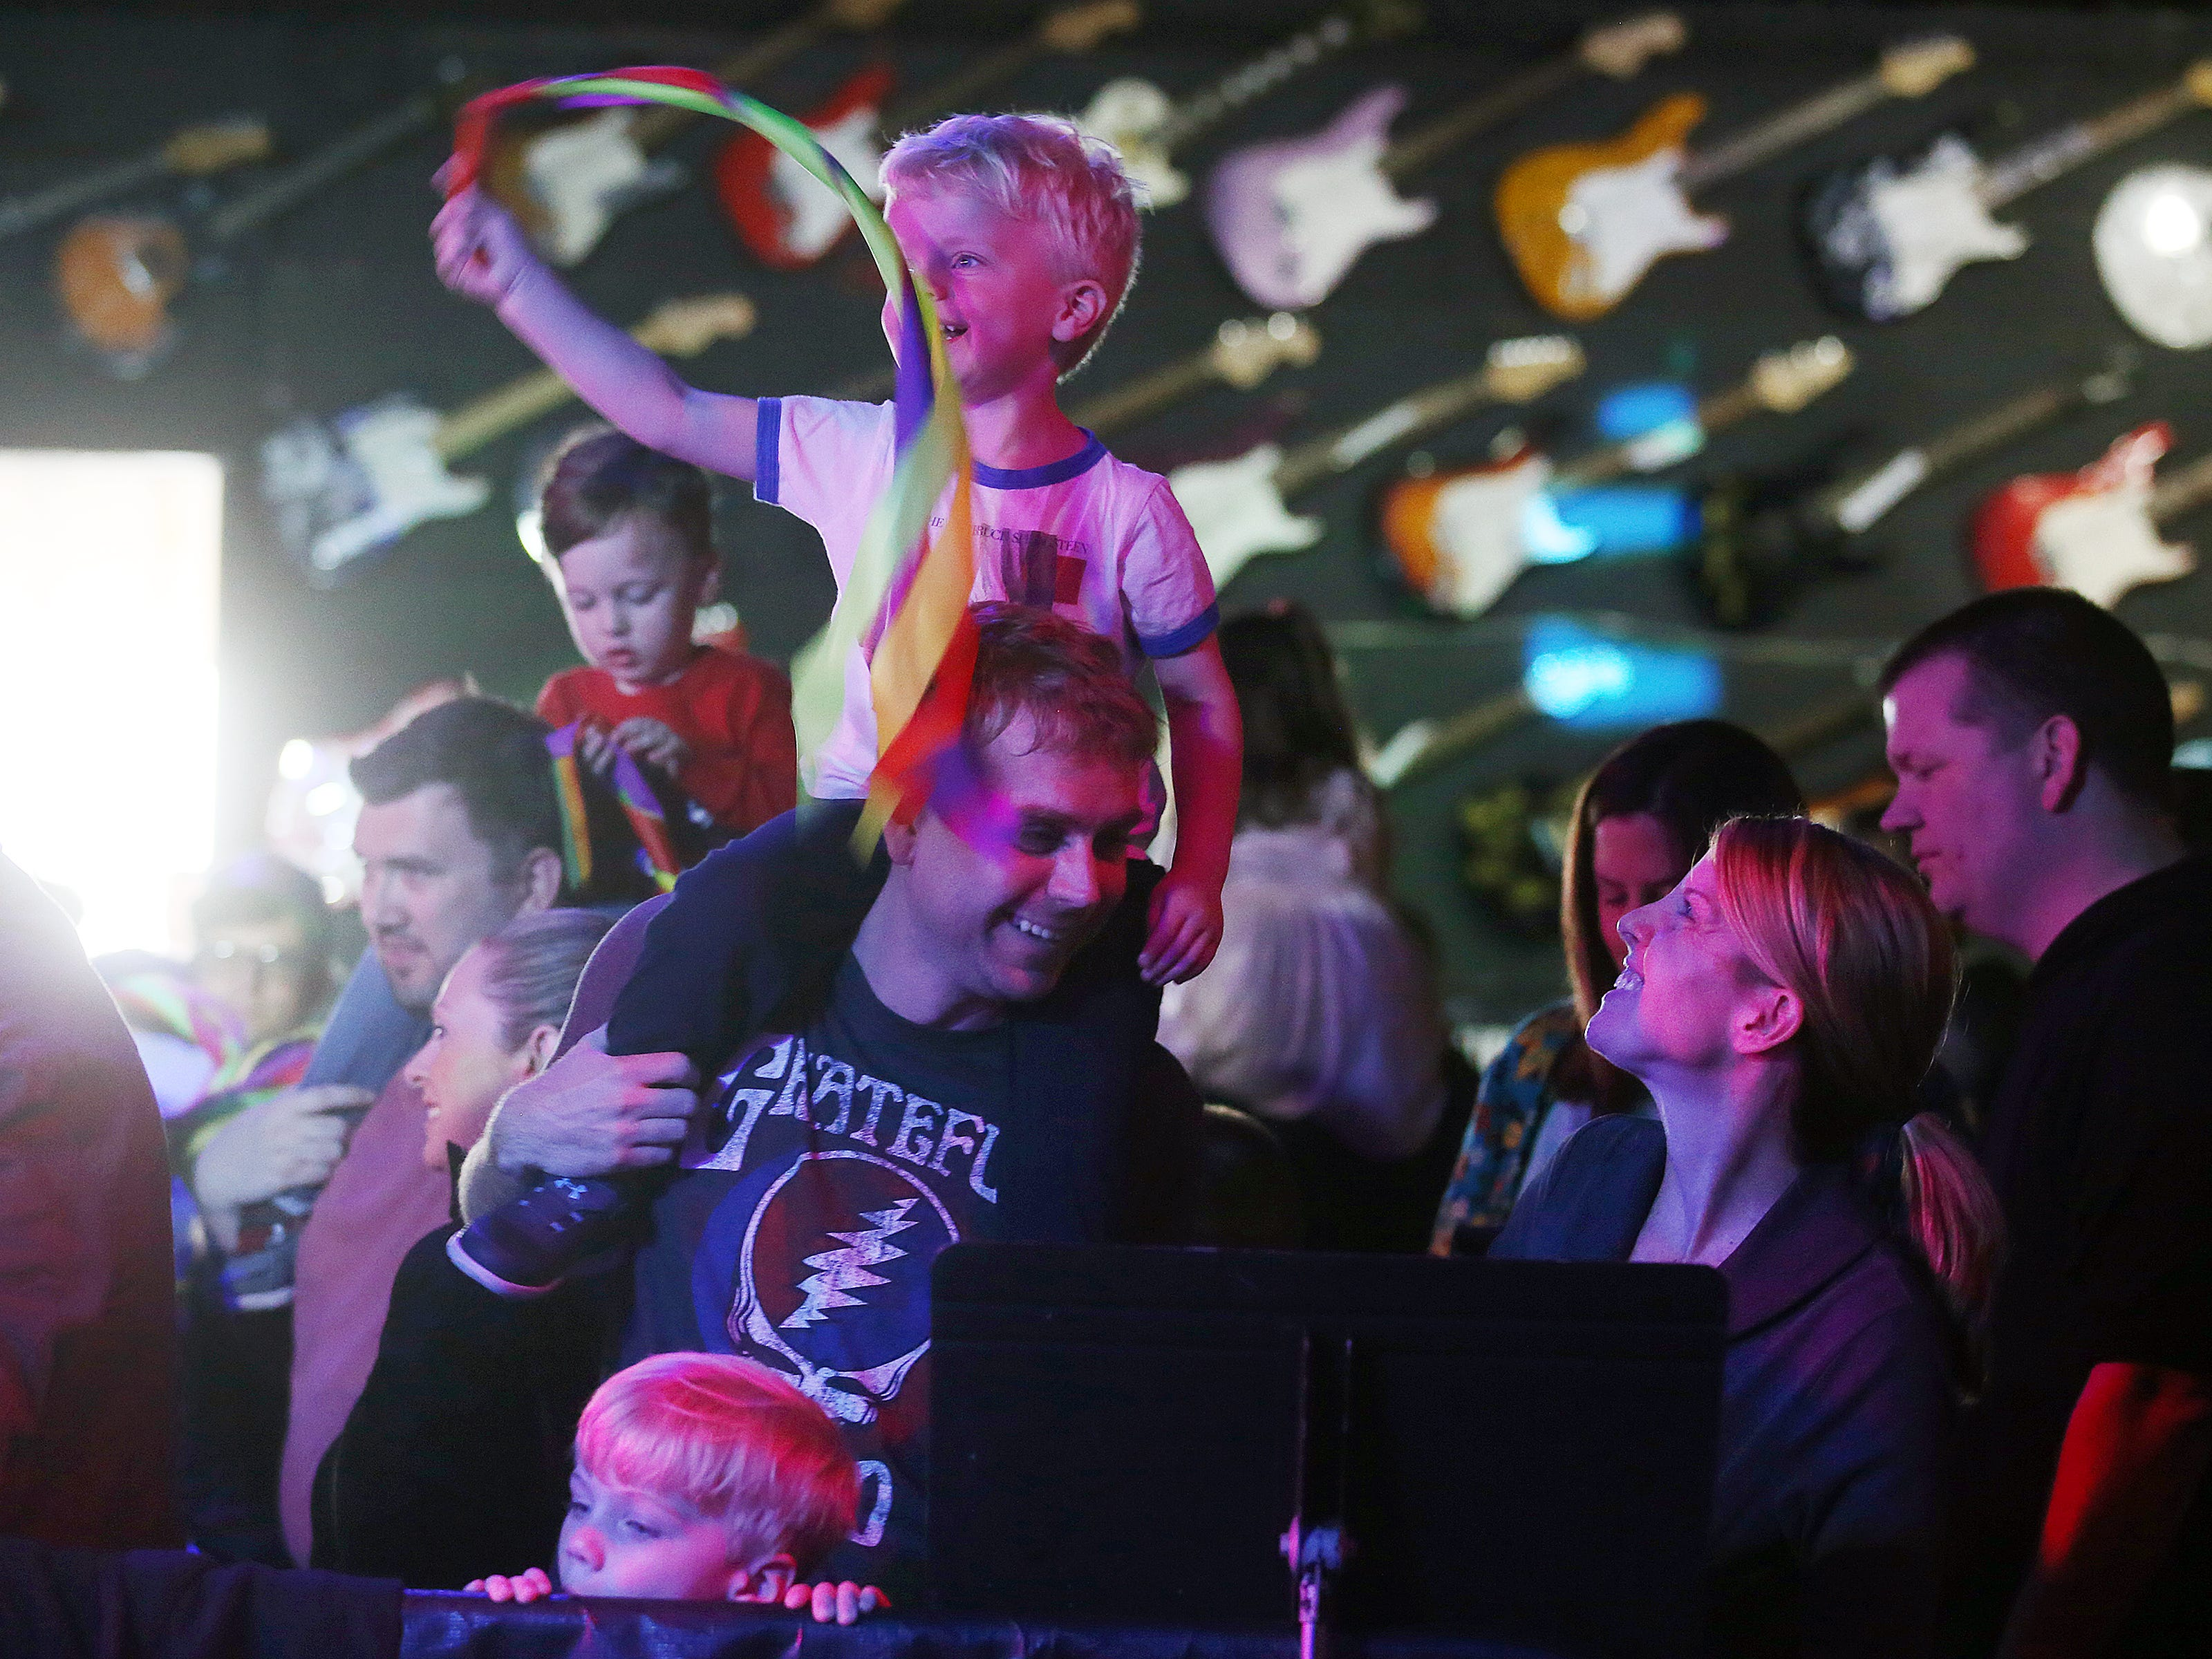 Danielle and Brandon Crosby of Ocean Twp. dance with their sons, (on shoulders) Ryan, 3, and (standing in front) Dylan, 5, as the Rock and Roll Playhouse presents the Music of Bruce Springsteen for Kids at the Stone Pony during the Asbury Park Music and Film Festival in Asbury Park, NJ Sunday, April 28, 2019.  #APMFF